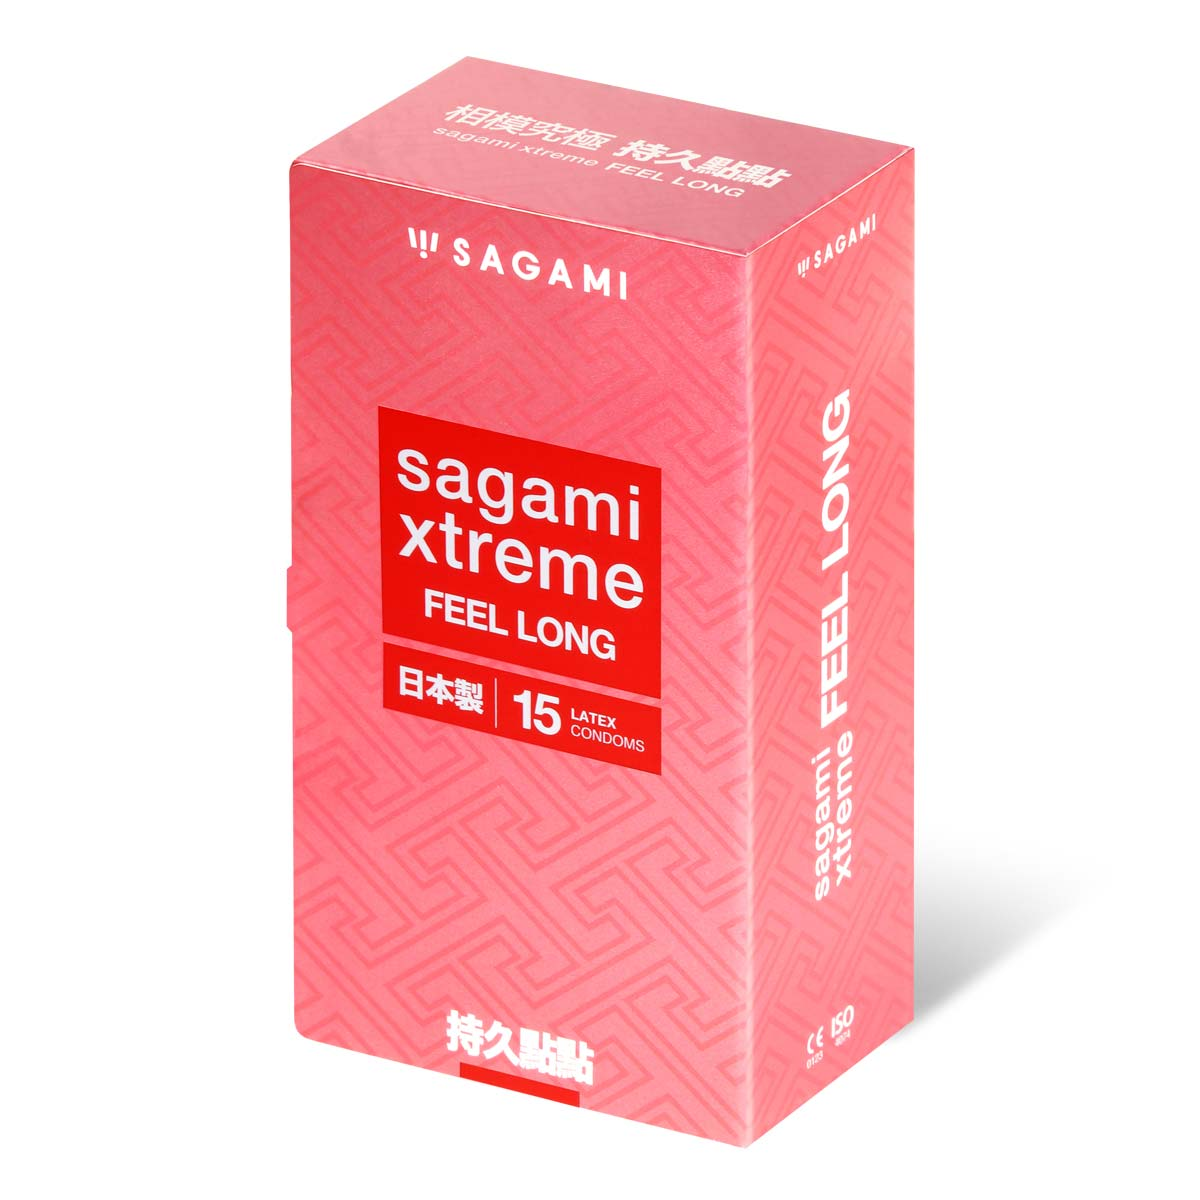 Sagami Xtreme Feel Long 15's Pack Latex Condom